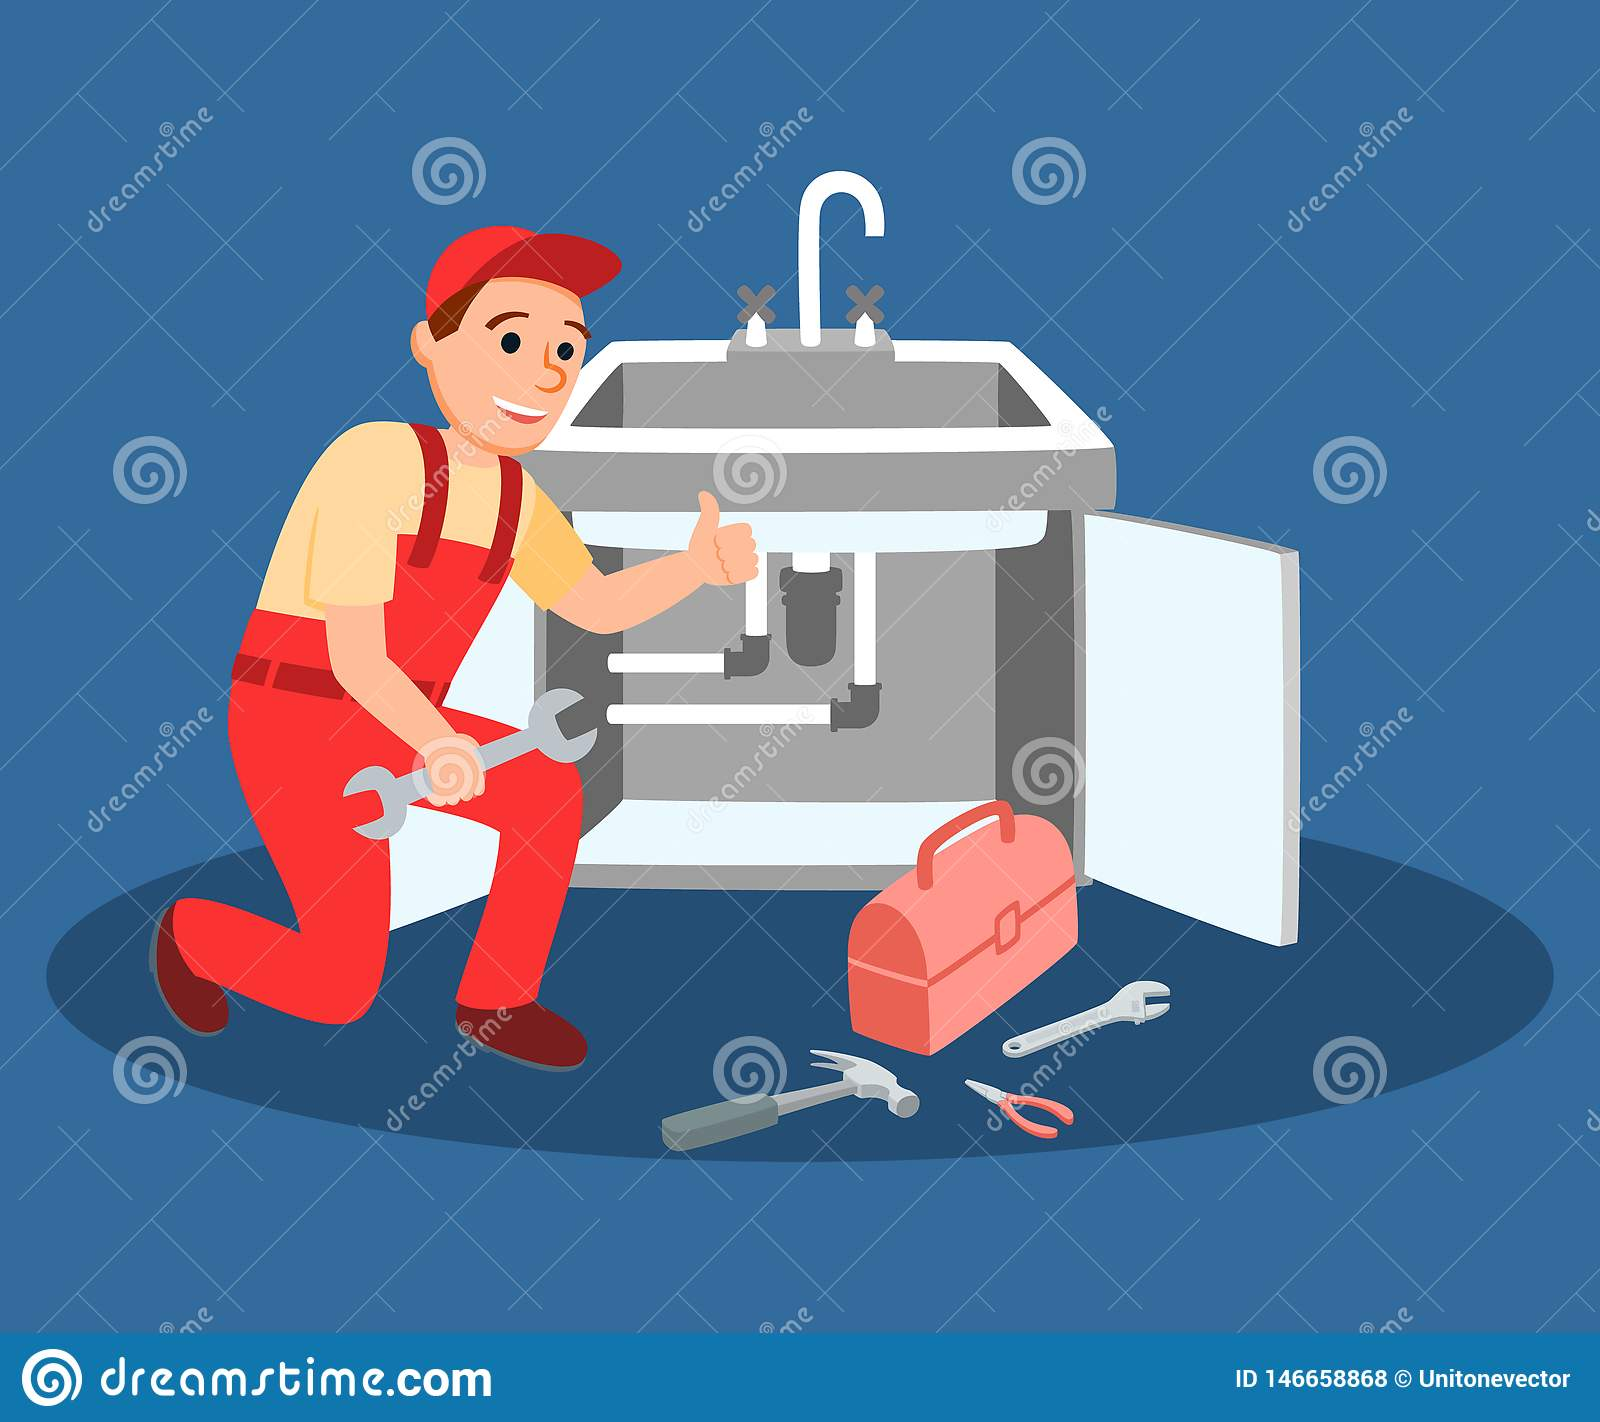 Plumber Master With Wrench Fixing Kitchen Faucet Stock Vector Illustration Of Emergency Plumber 146658868